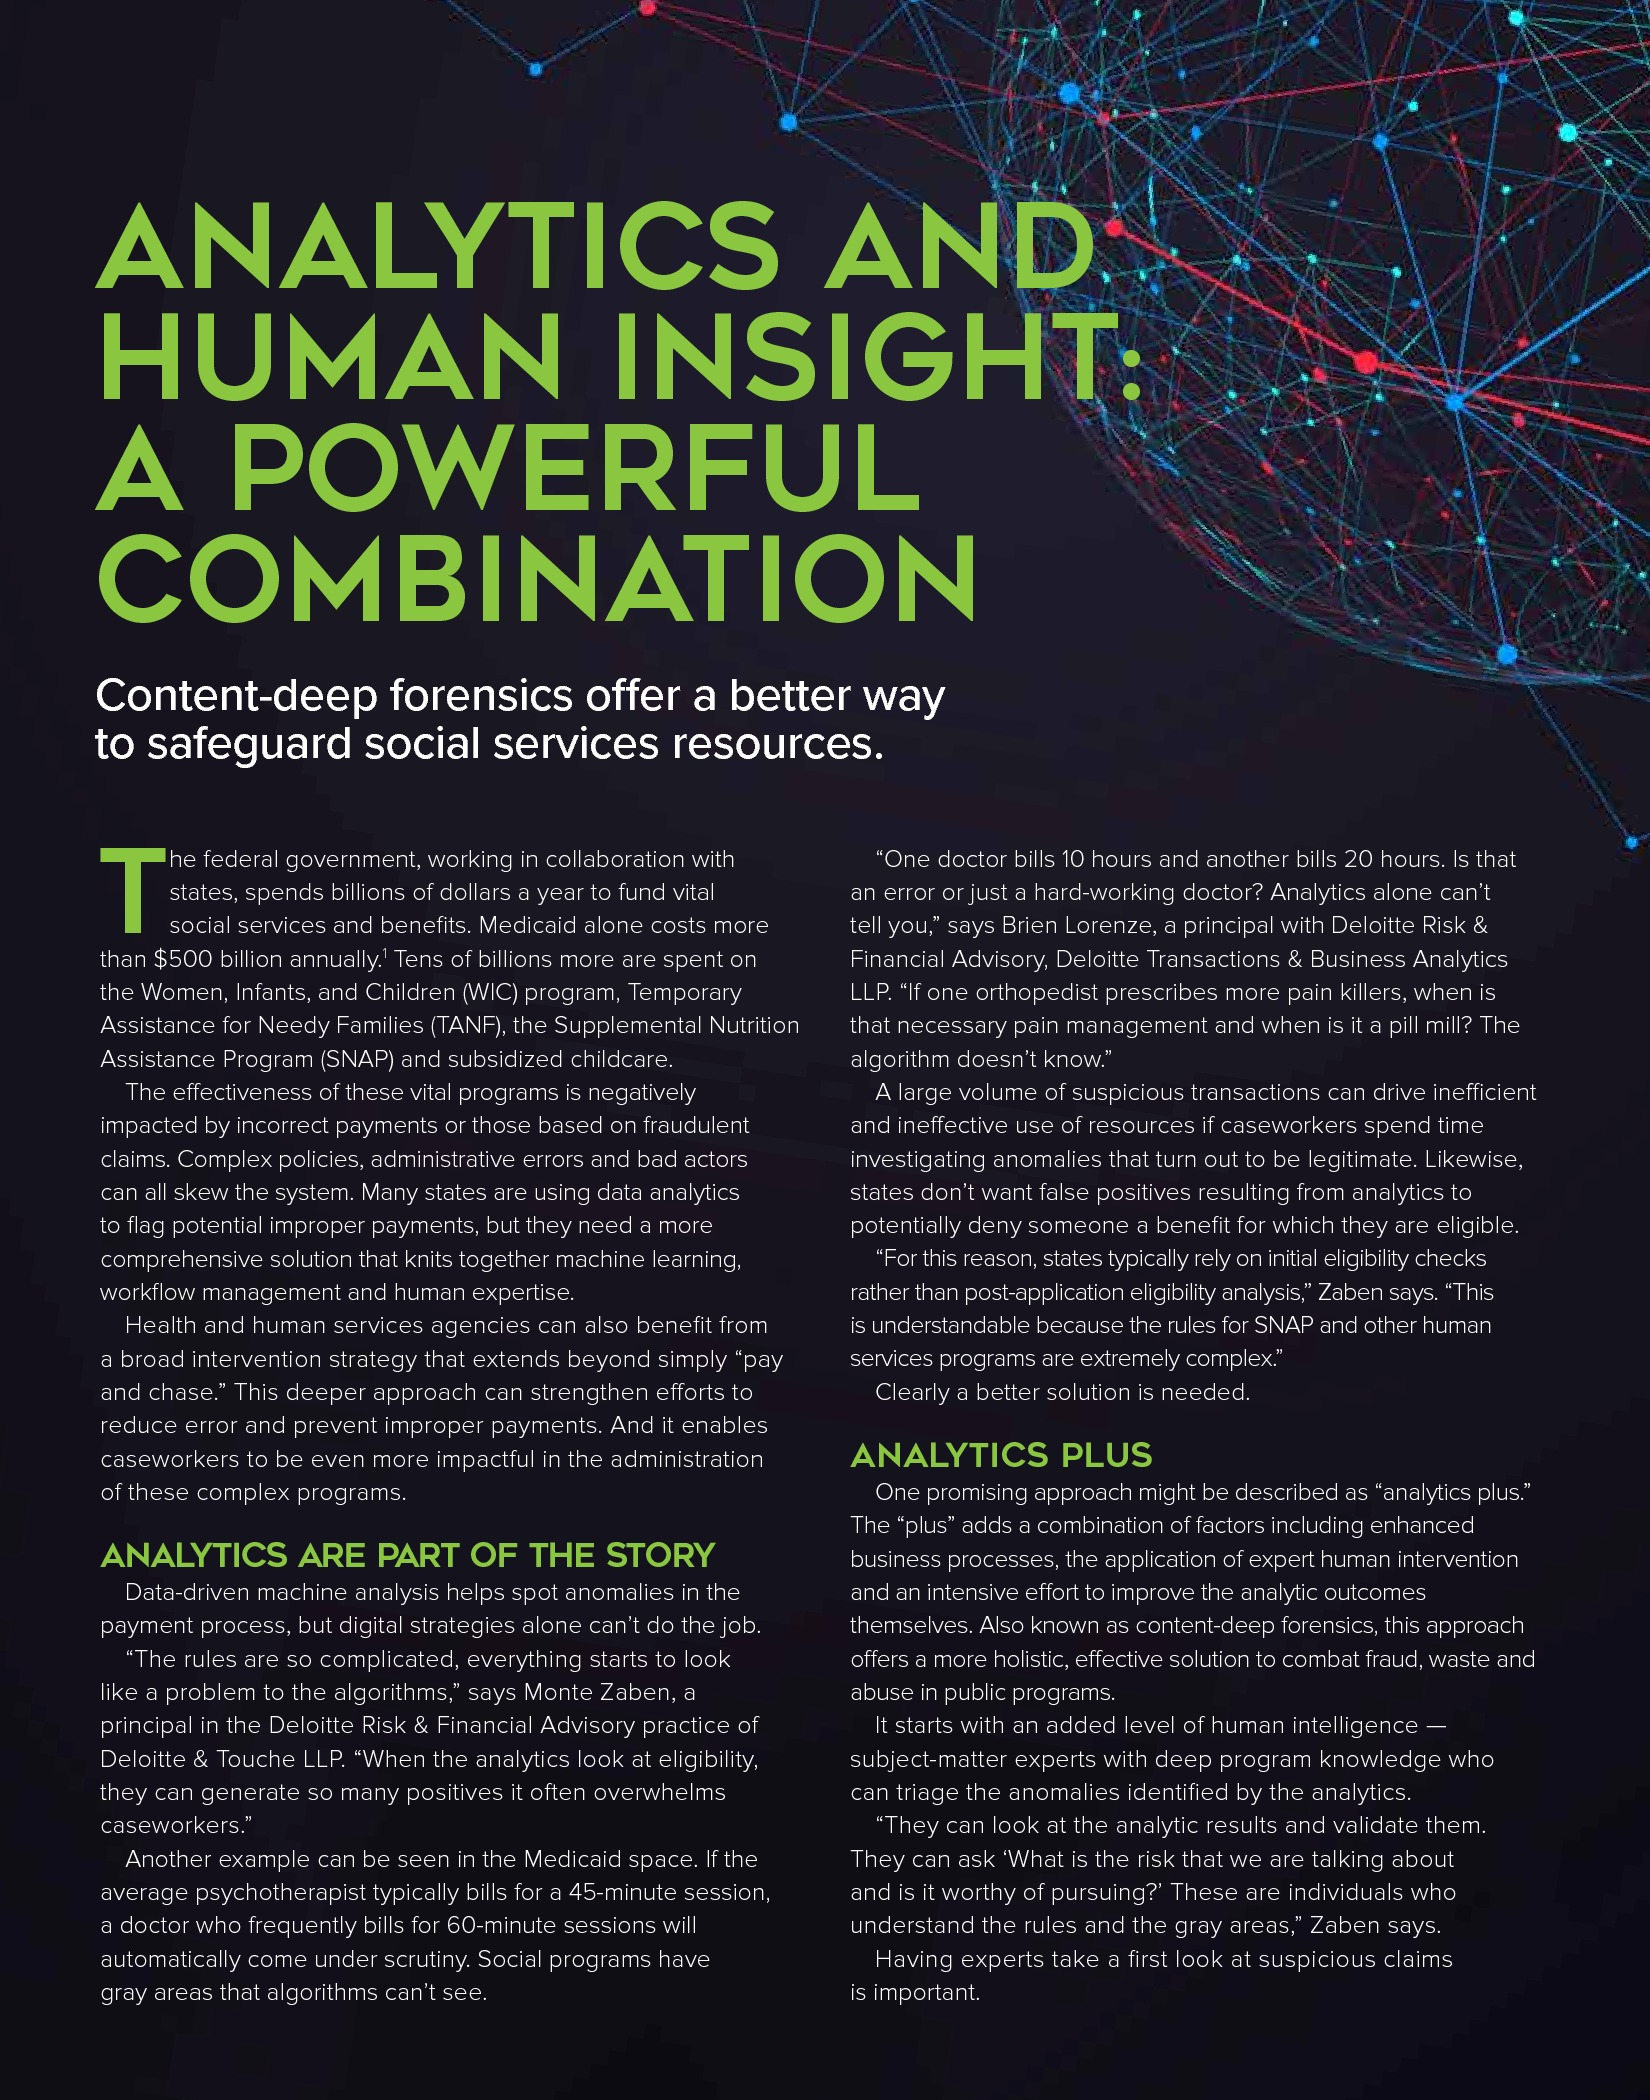 Analytics and Human Insight: A Powerful Combination